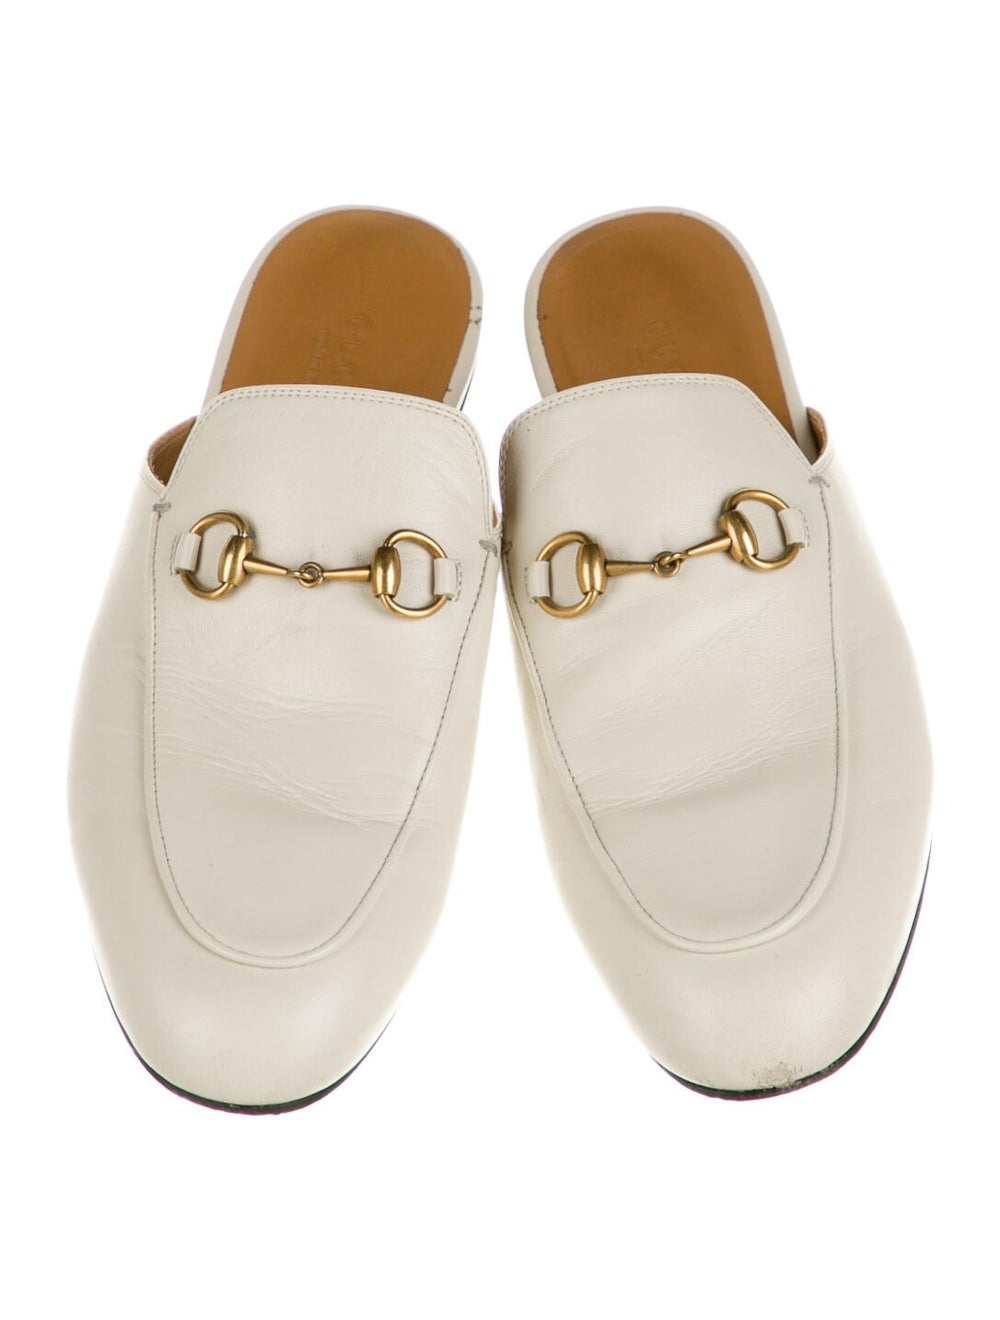 Gucci Horsebit Accent Leather Mules - image 3